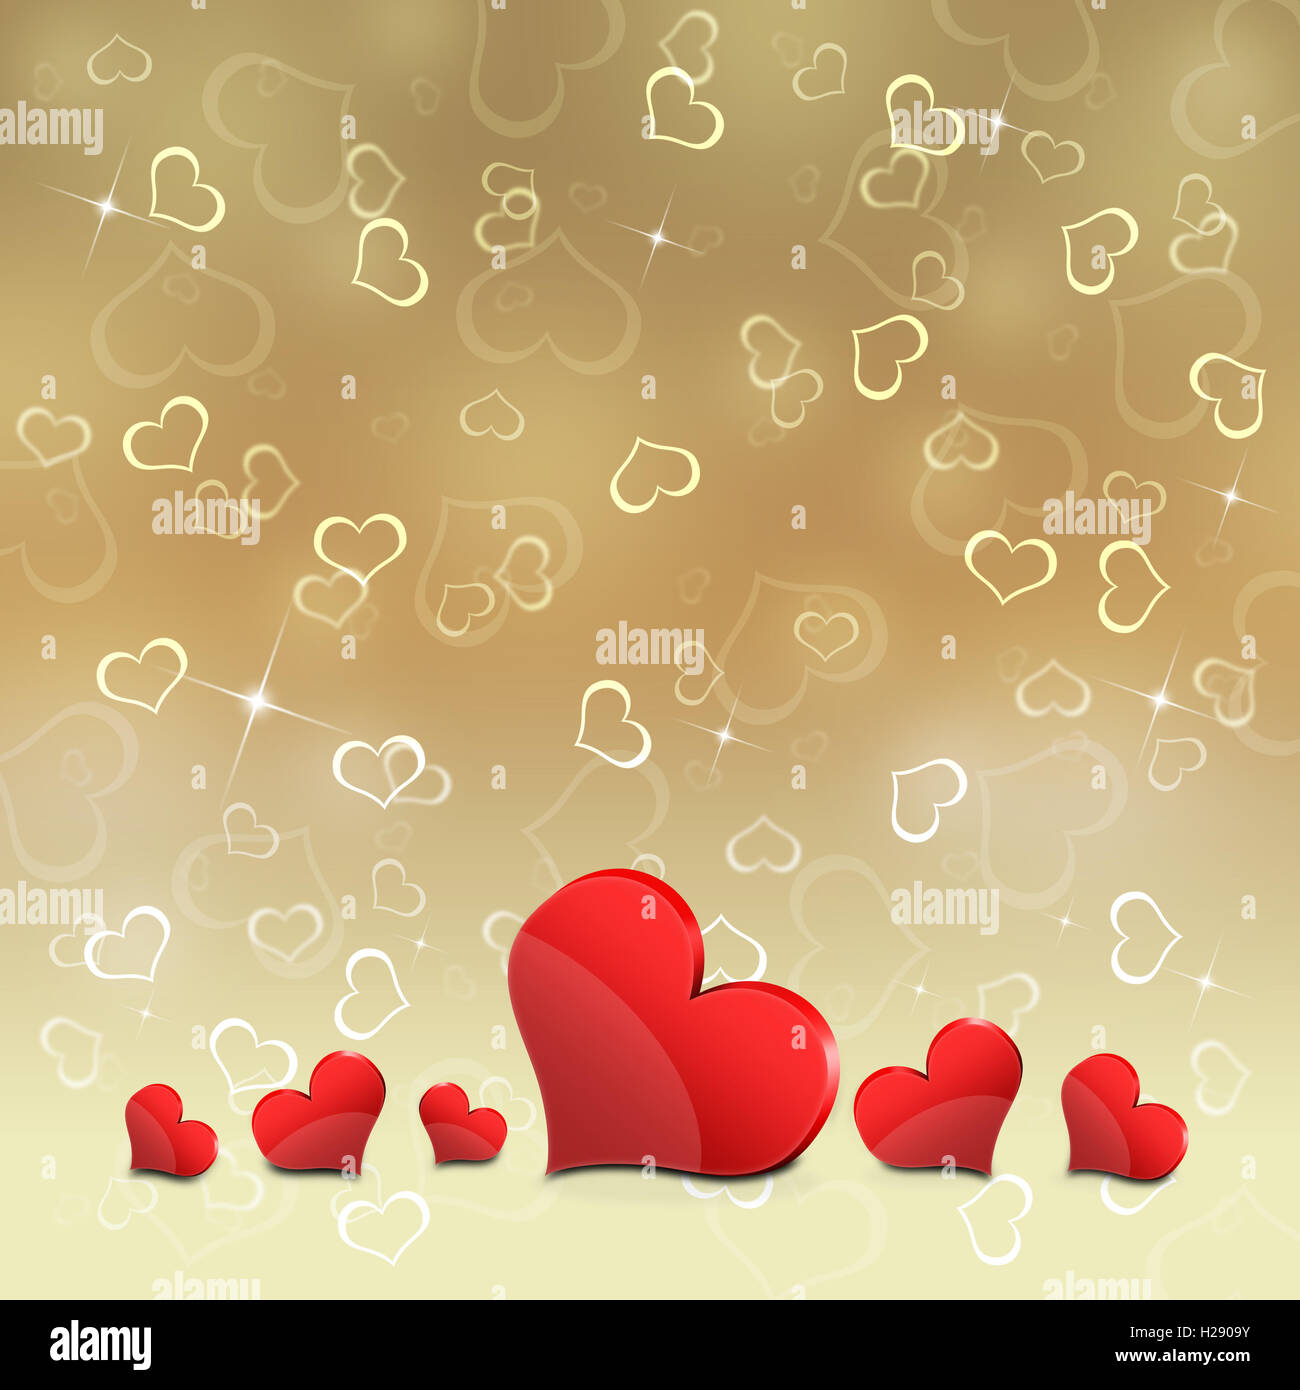 Love And Romance Wall Art Stock Photos & Love And Romance Wall Art ...